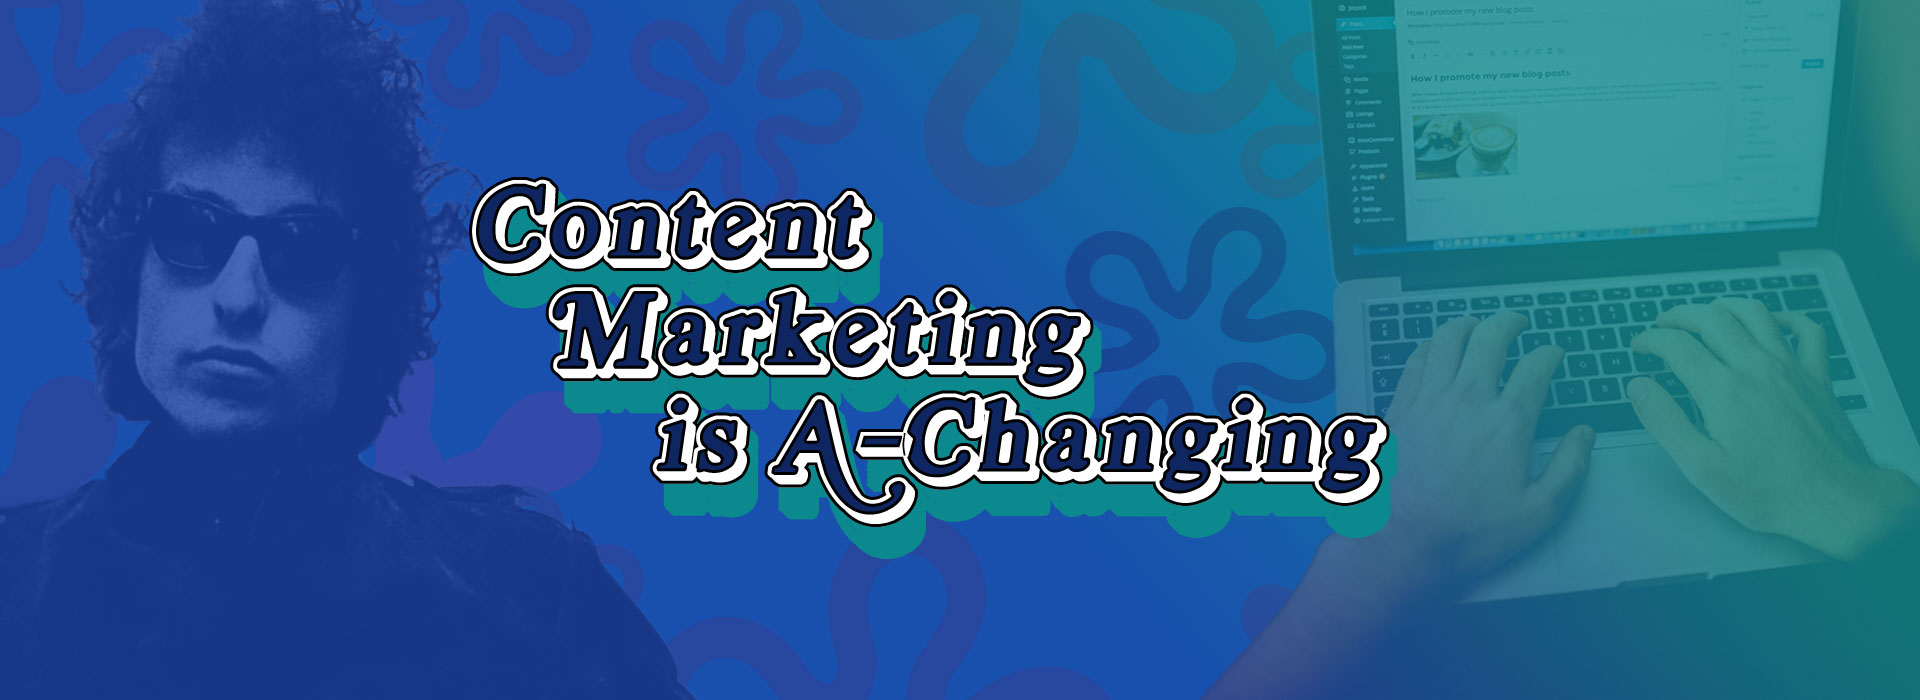 Content marketing is a-changing